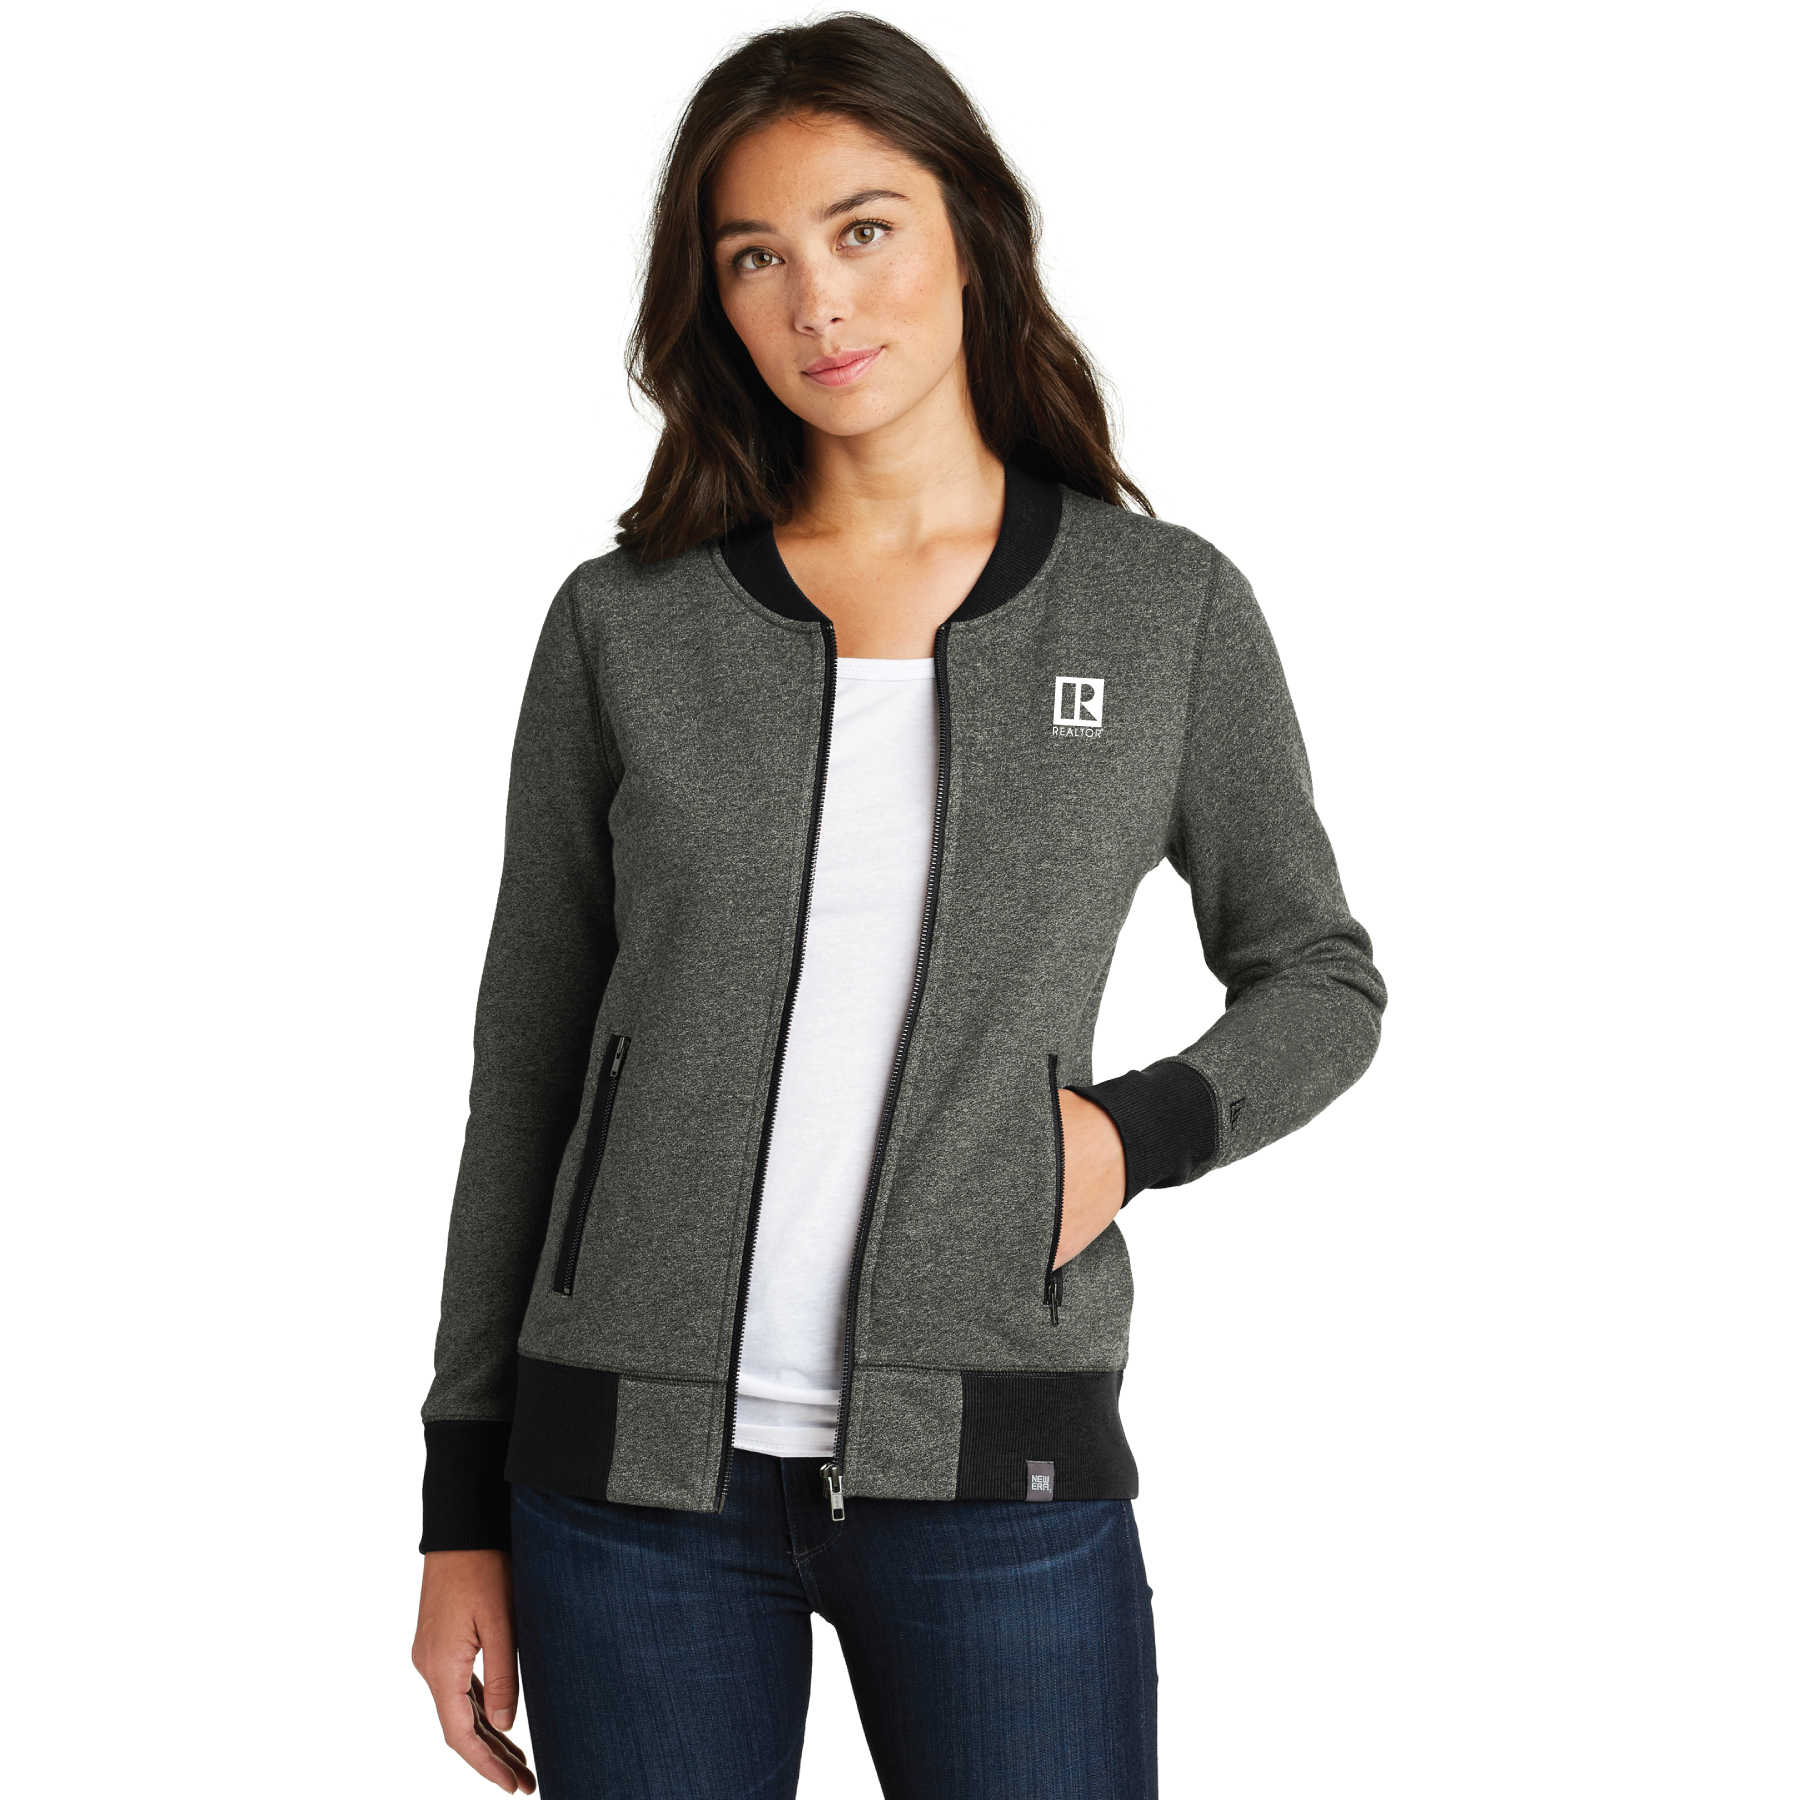 New Era Ladies French Terry Baseball Full-Zip french, terry, baseball, jackets, zip, zippers, ladies